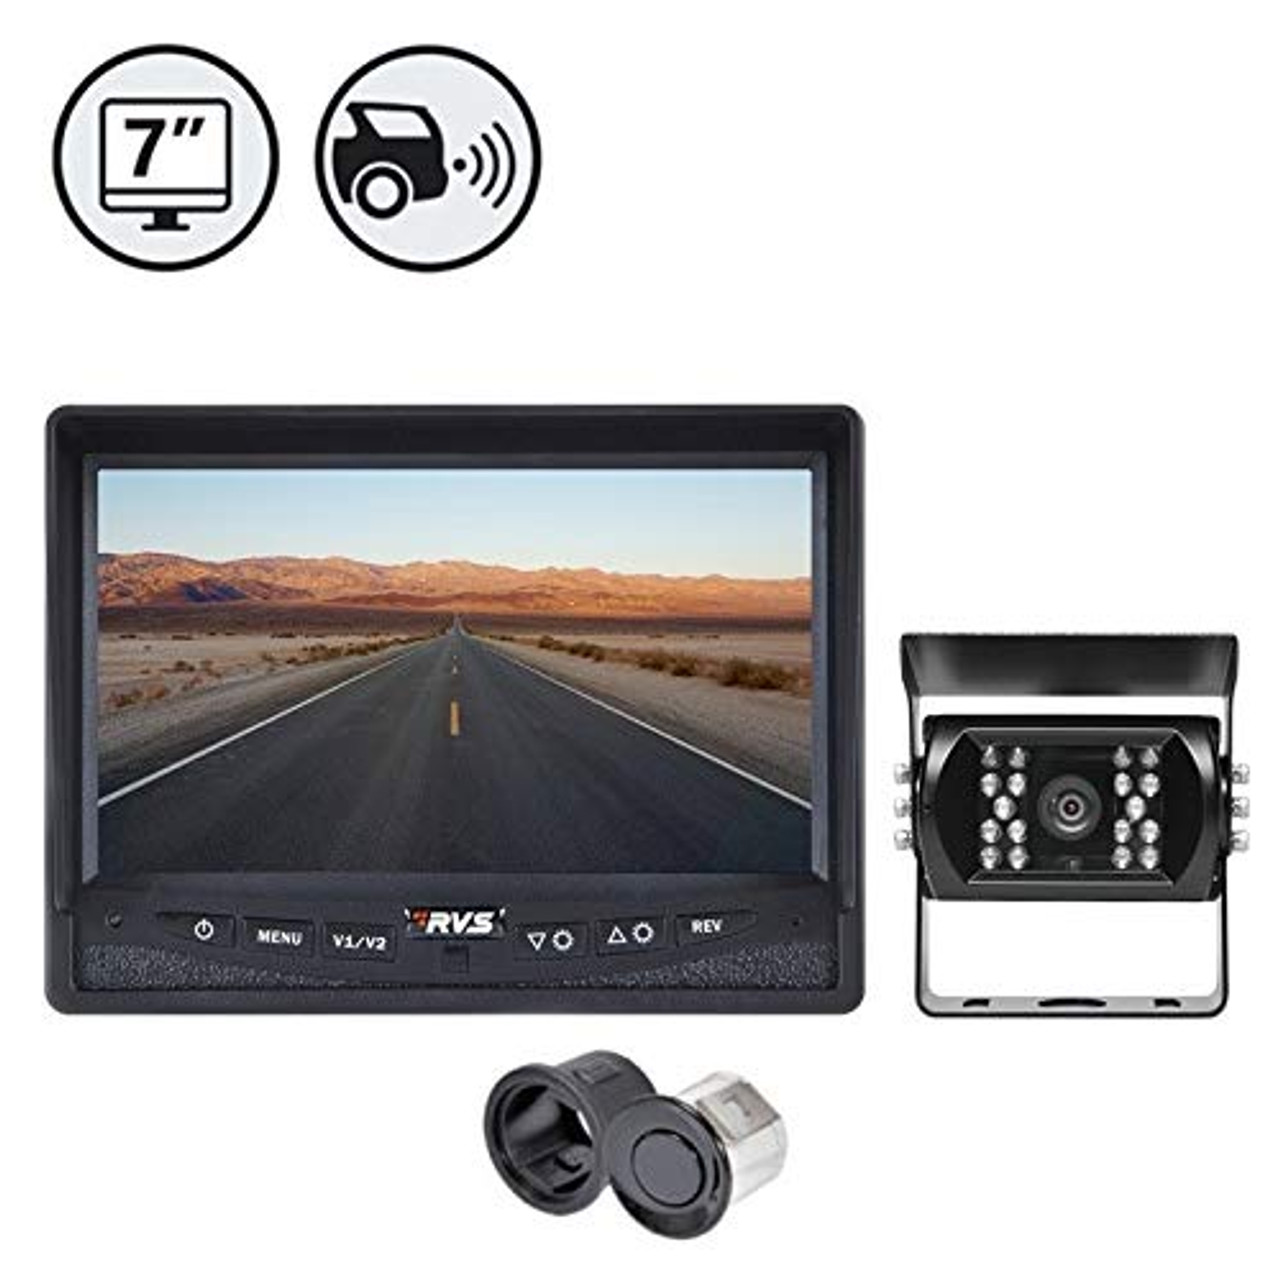 "7"" Display, 1 x Backup Camera, 66' Cable, Backup Sensor Reversing System 